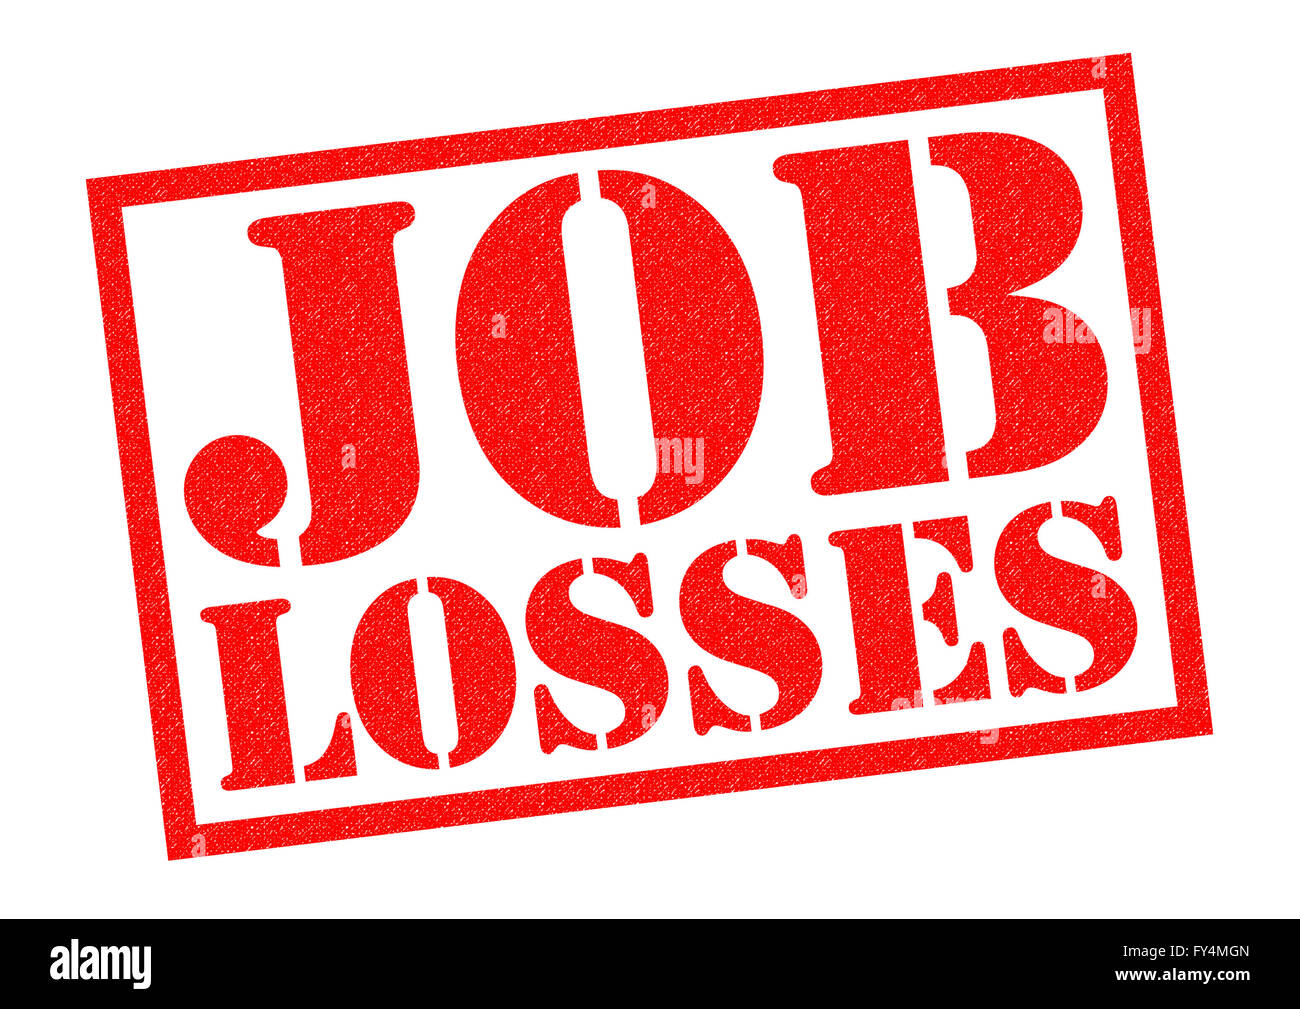 JOB LOSSES red Rubber Stamp over a white background. - Stock Image